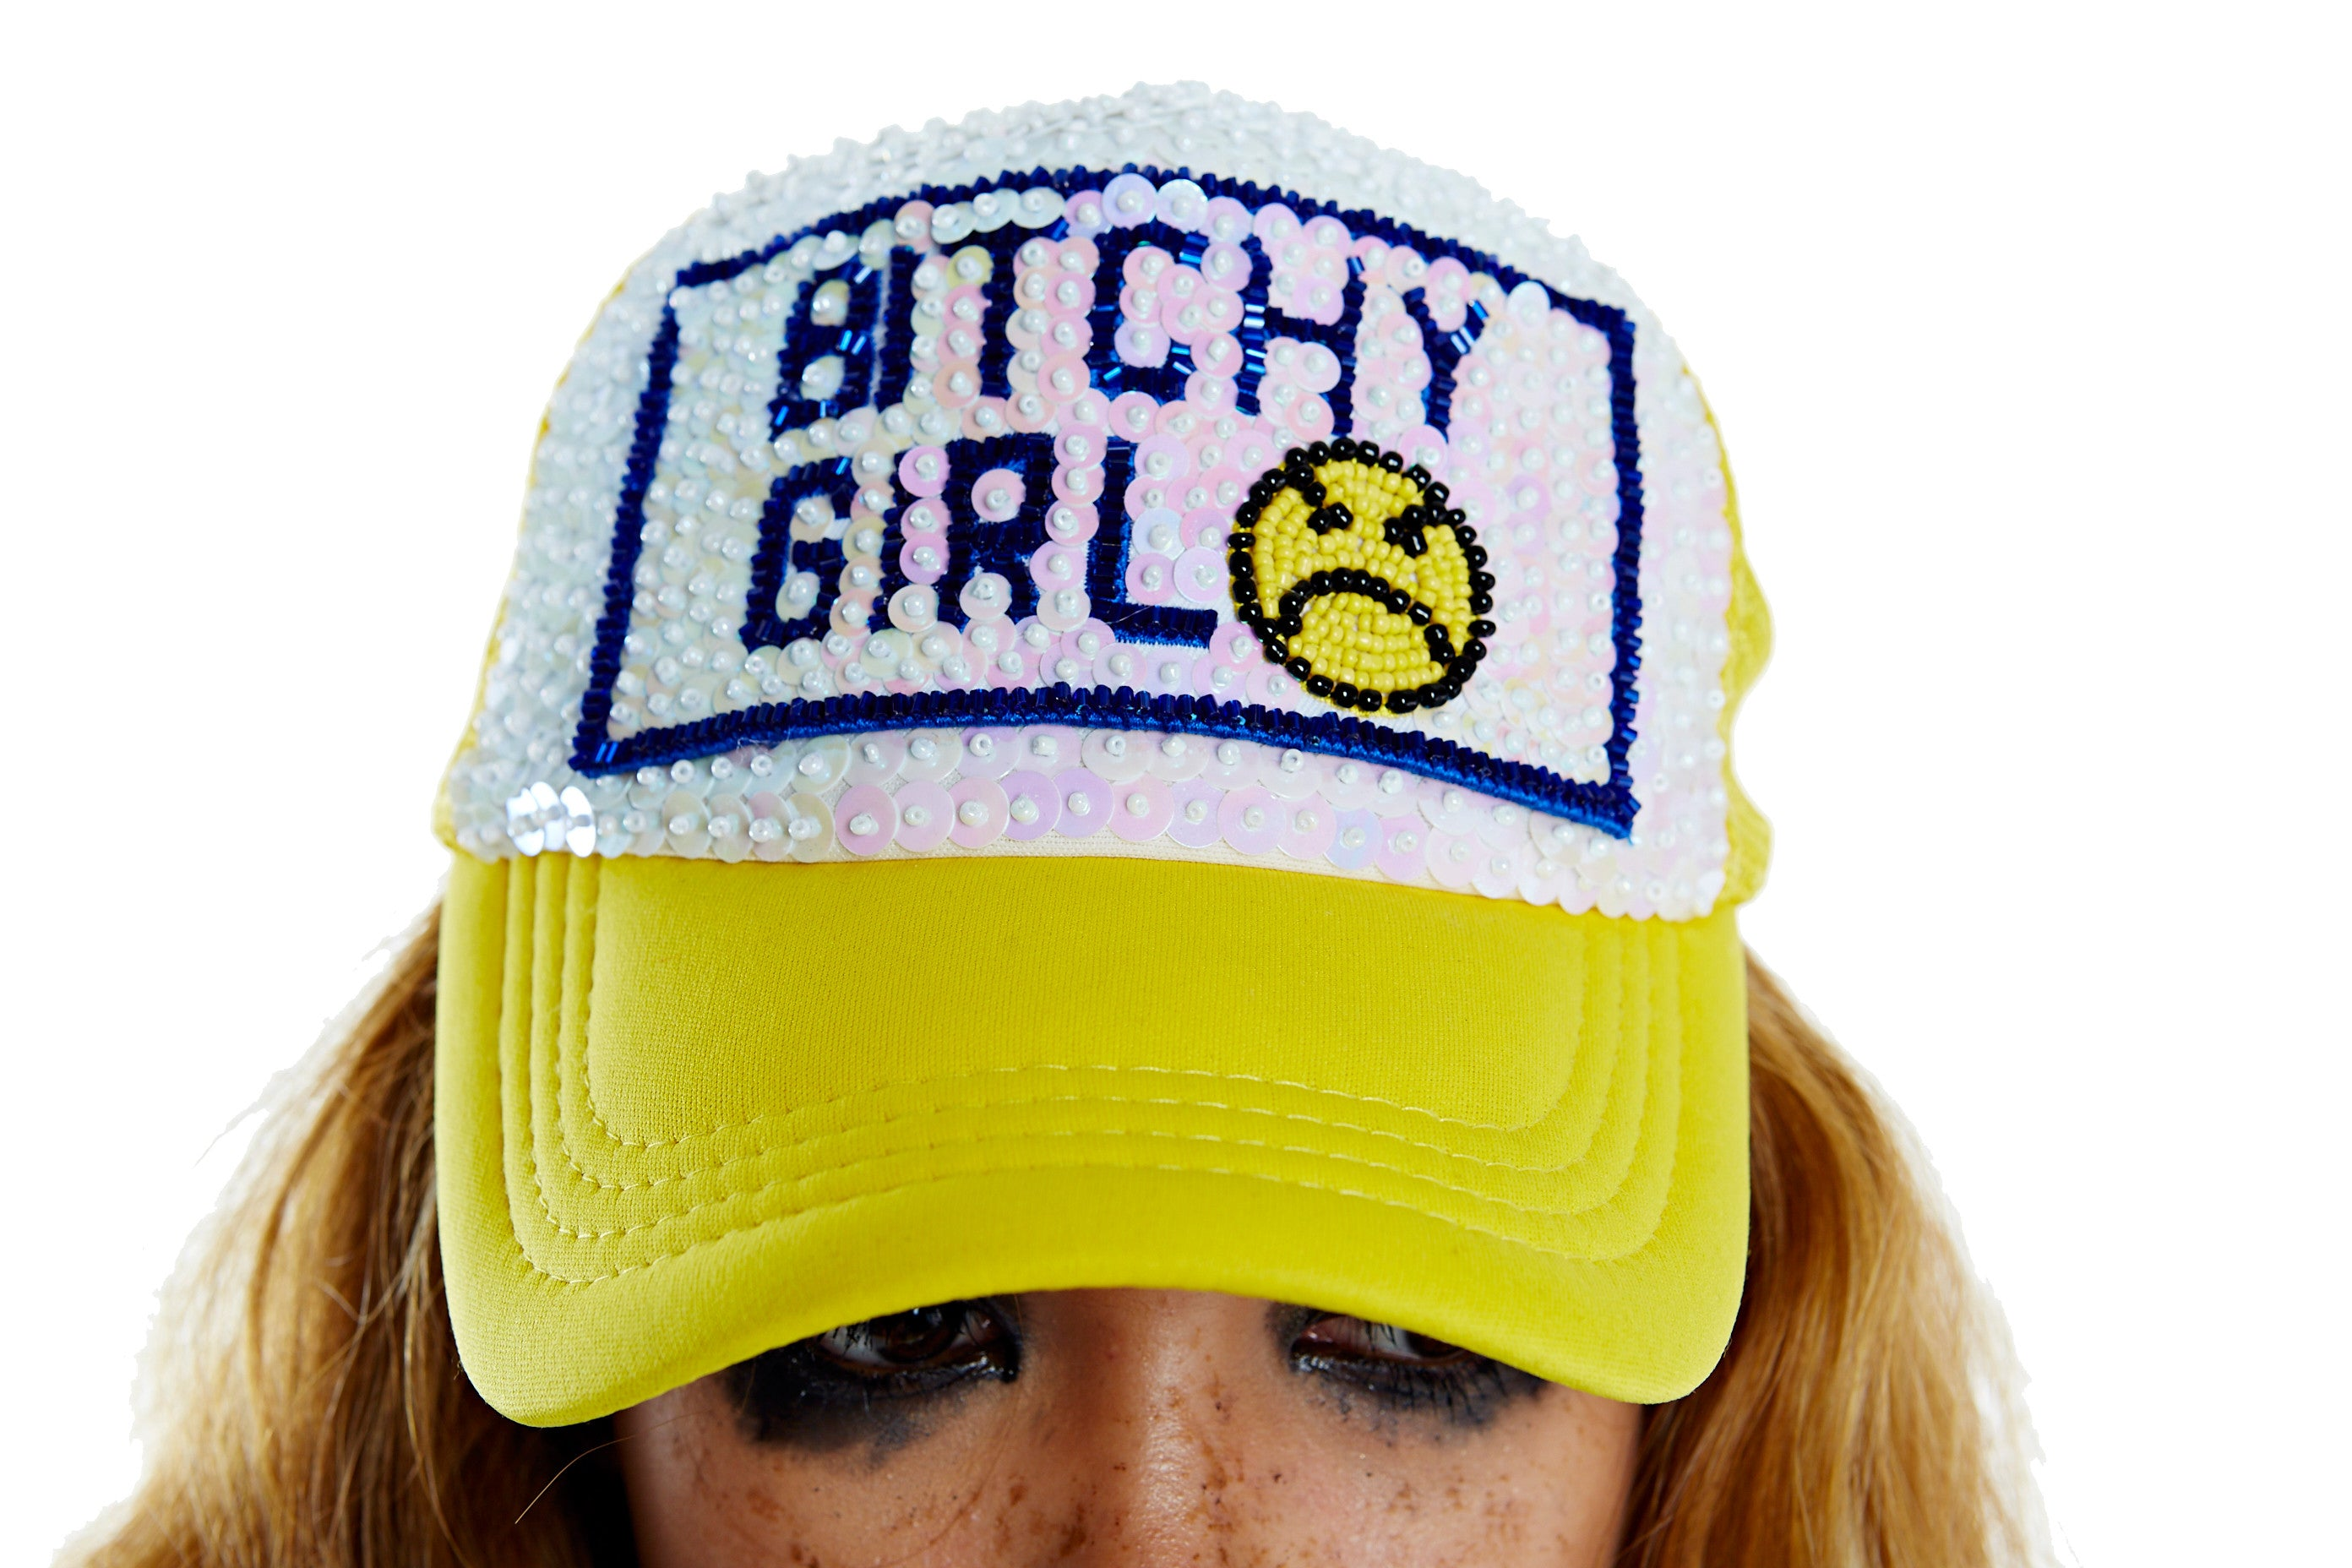 BITCHY GIRL Hat - Yellow